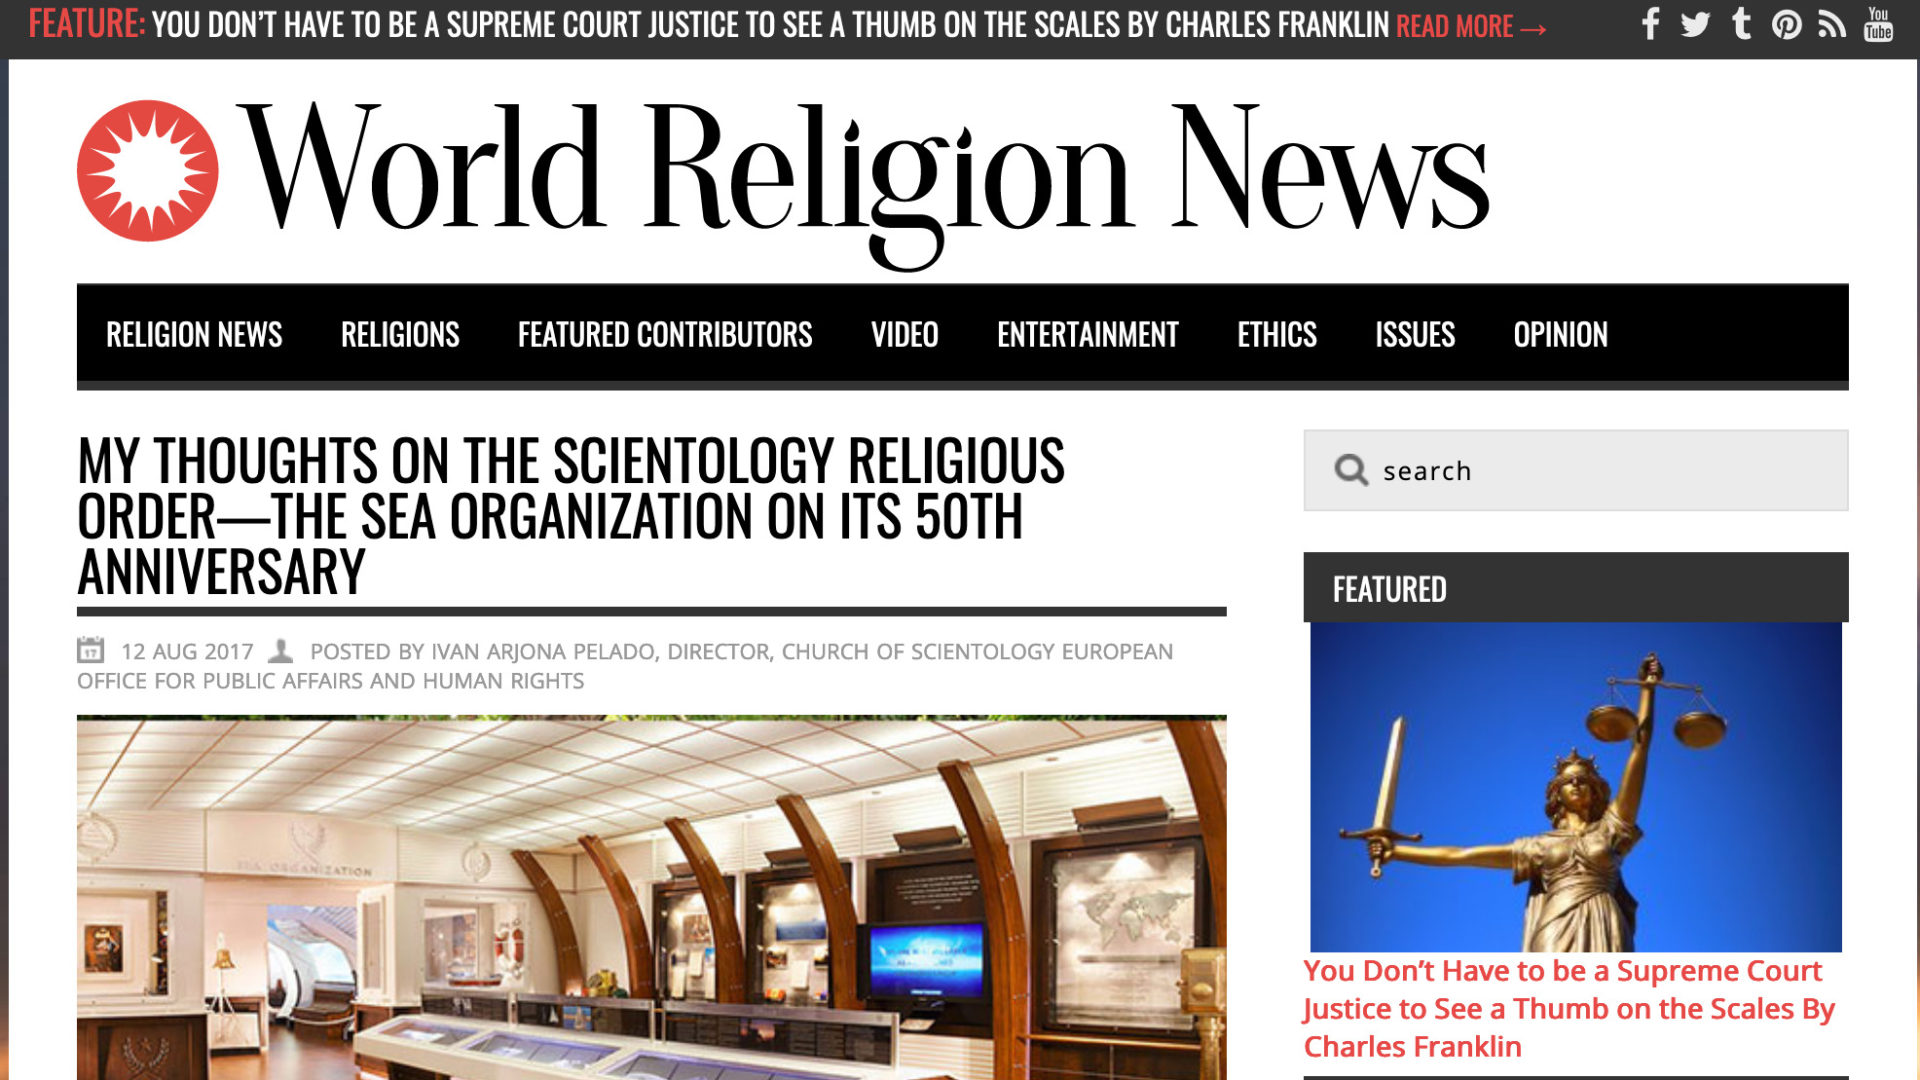 My Thoughts on the Scientology Religious Order—the Sea Organization on its 50th Anniversary - World Religion News IVAN ARJONA PELADO